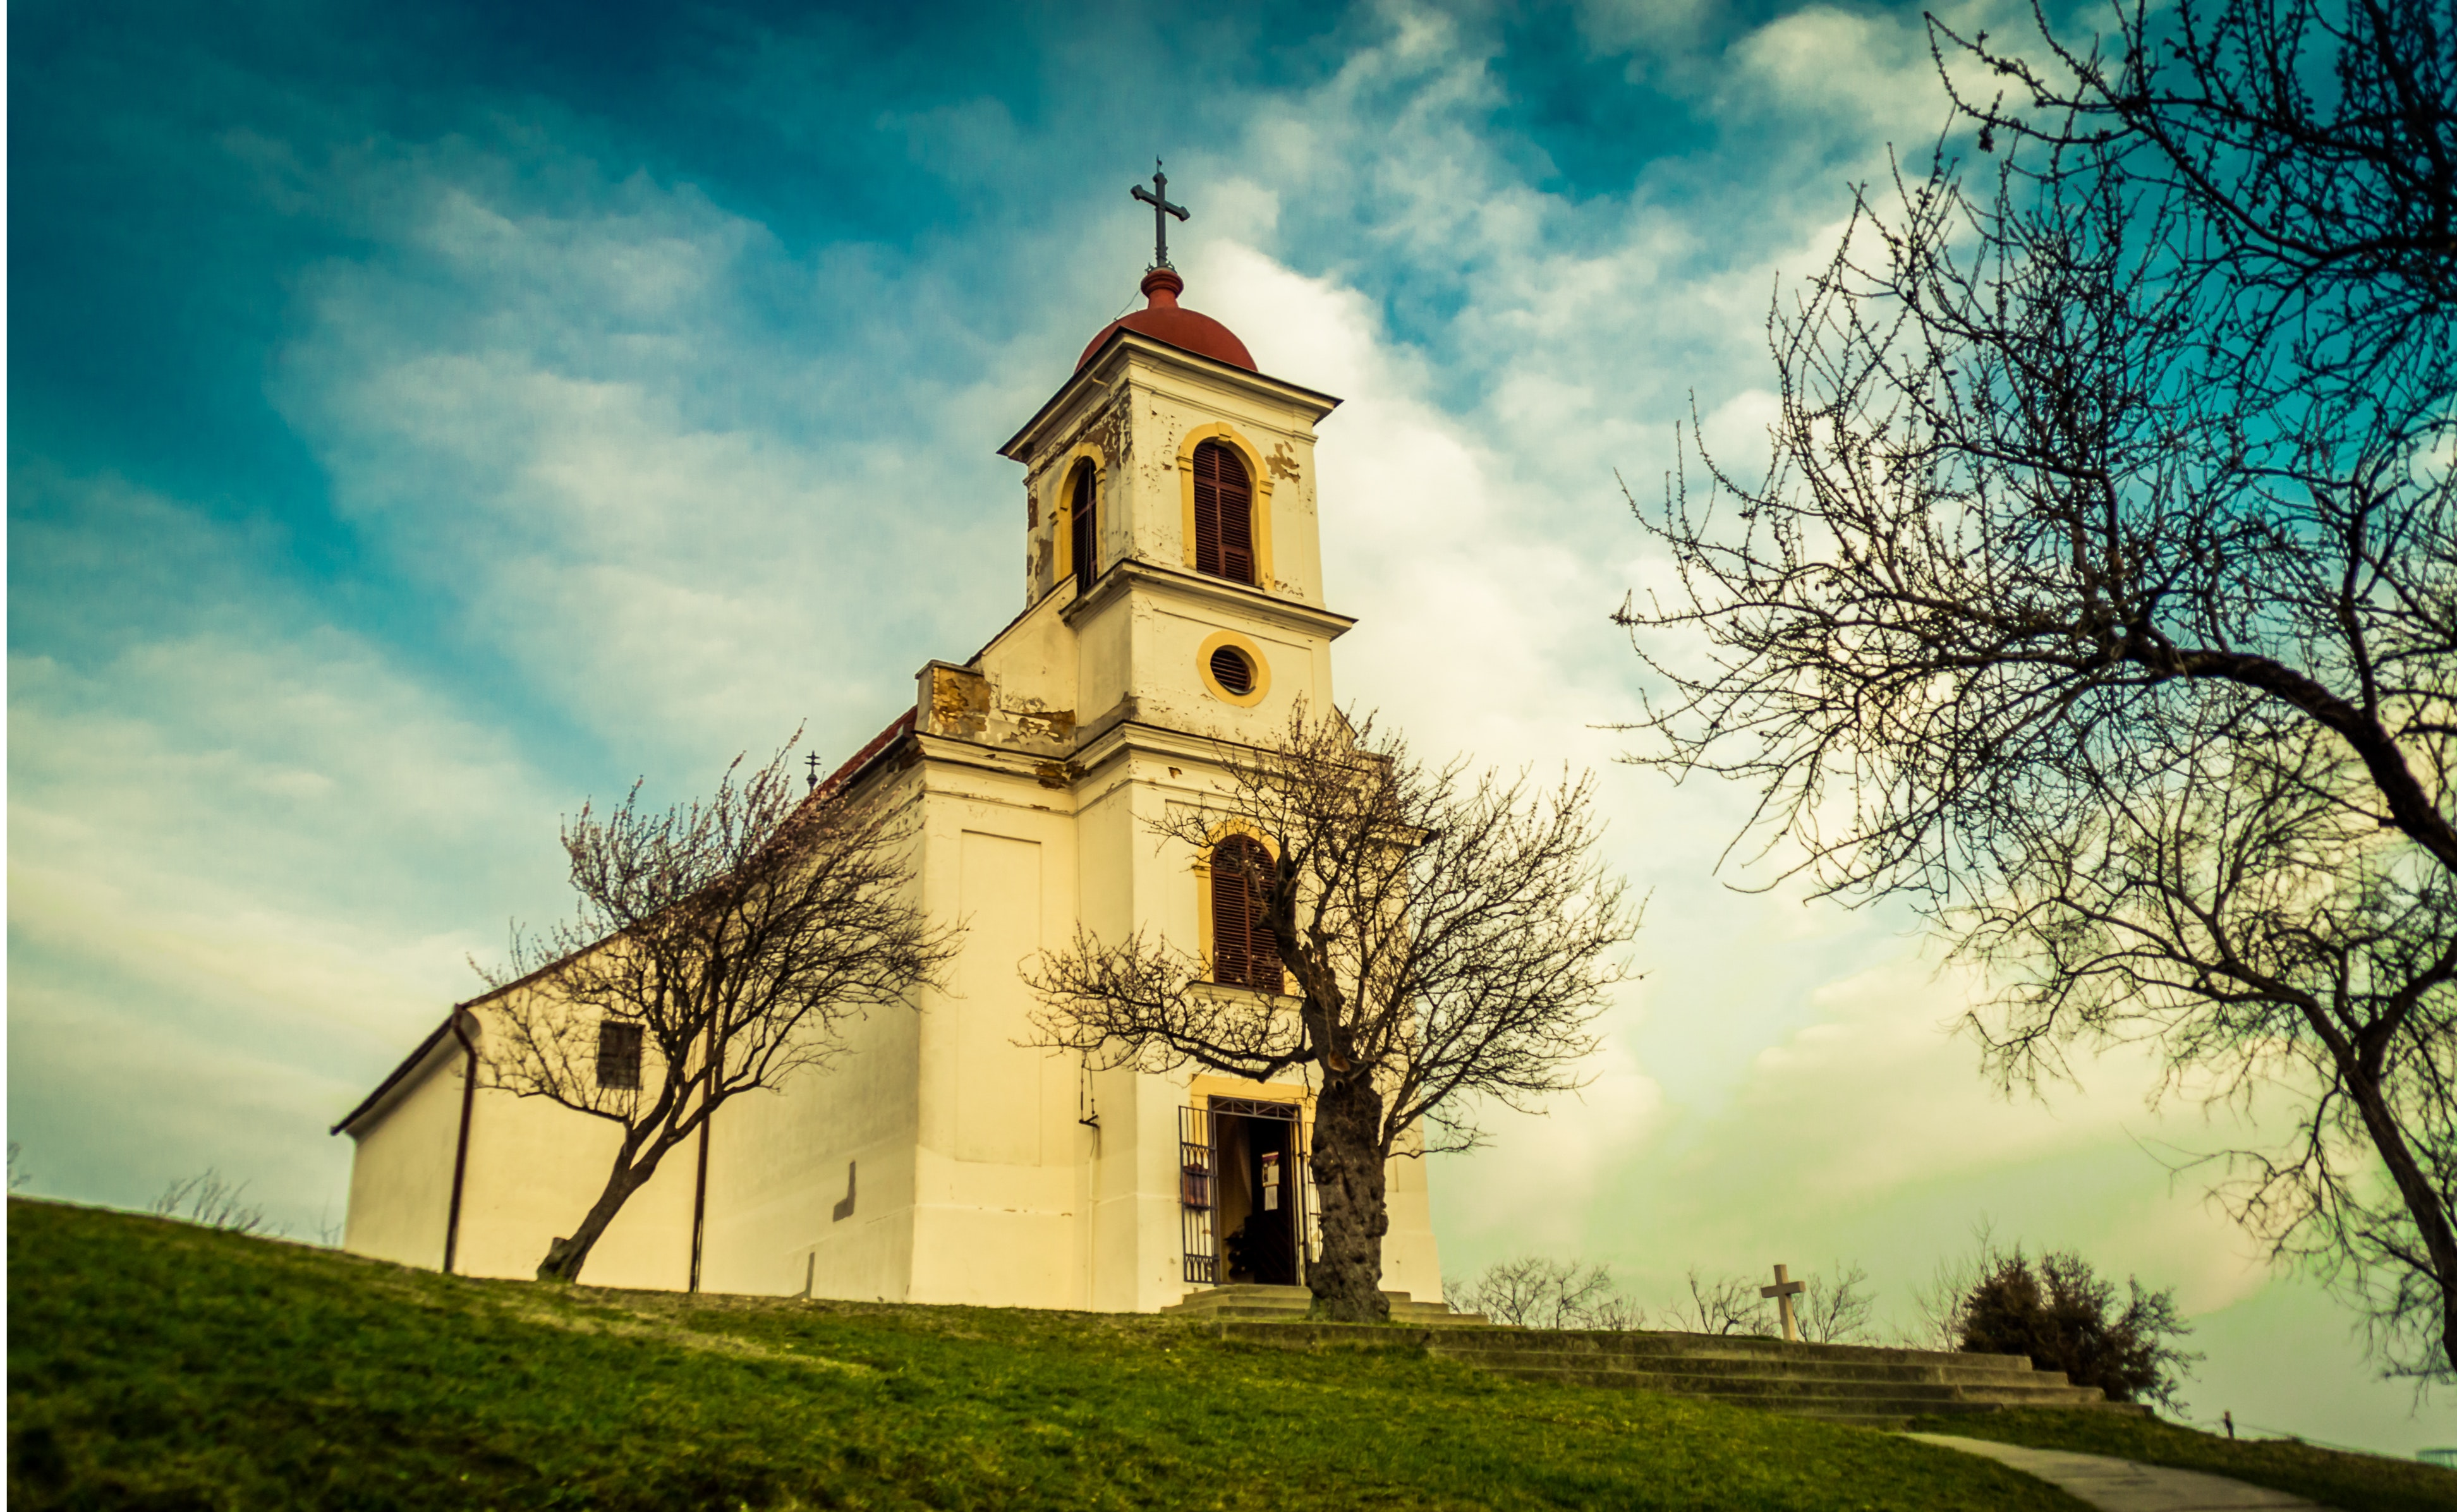 Cathedral under clouds near leafless tree photo